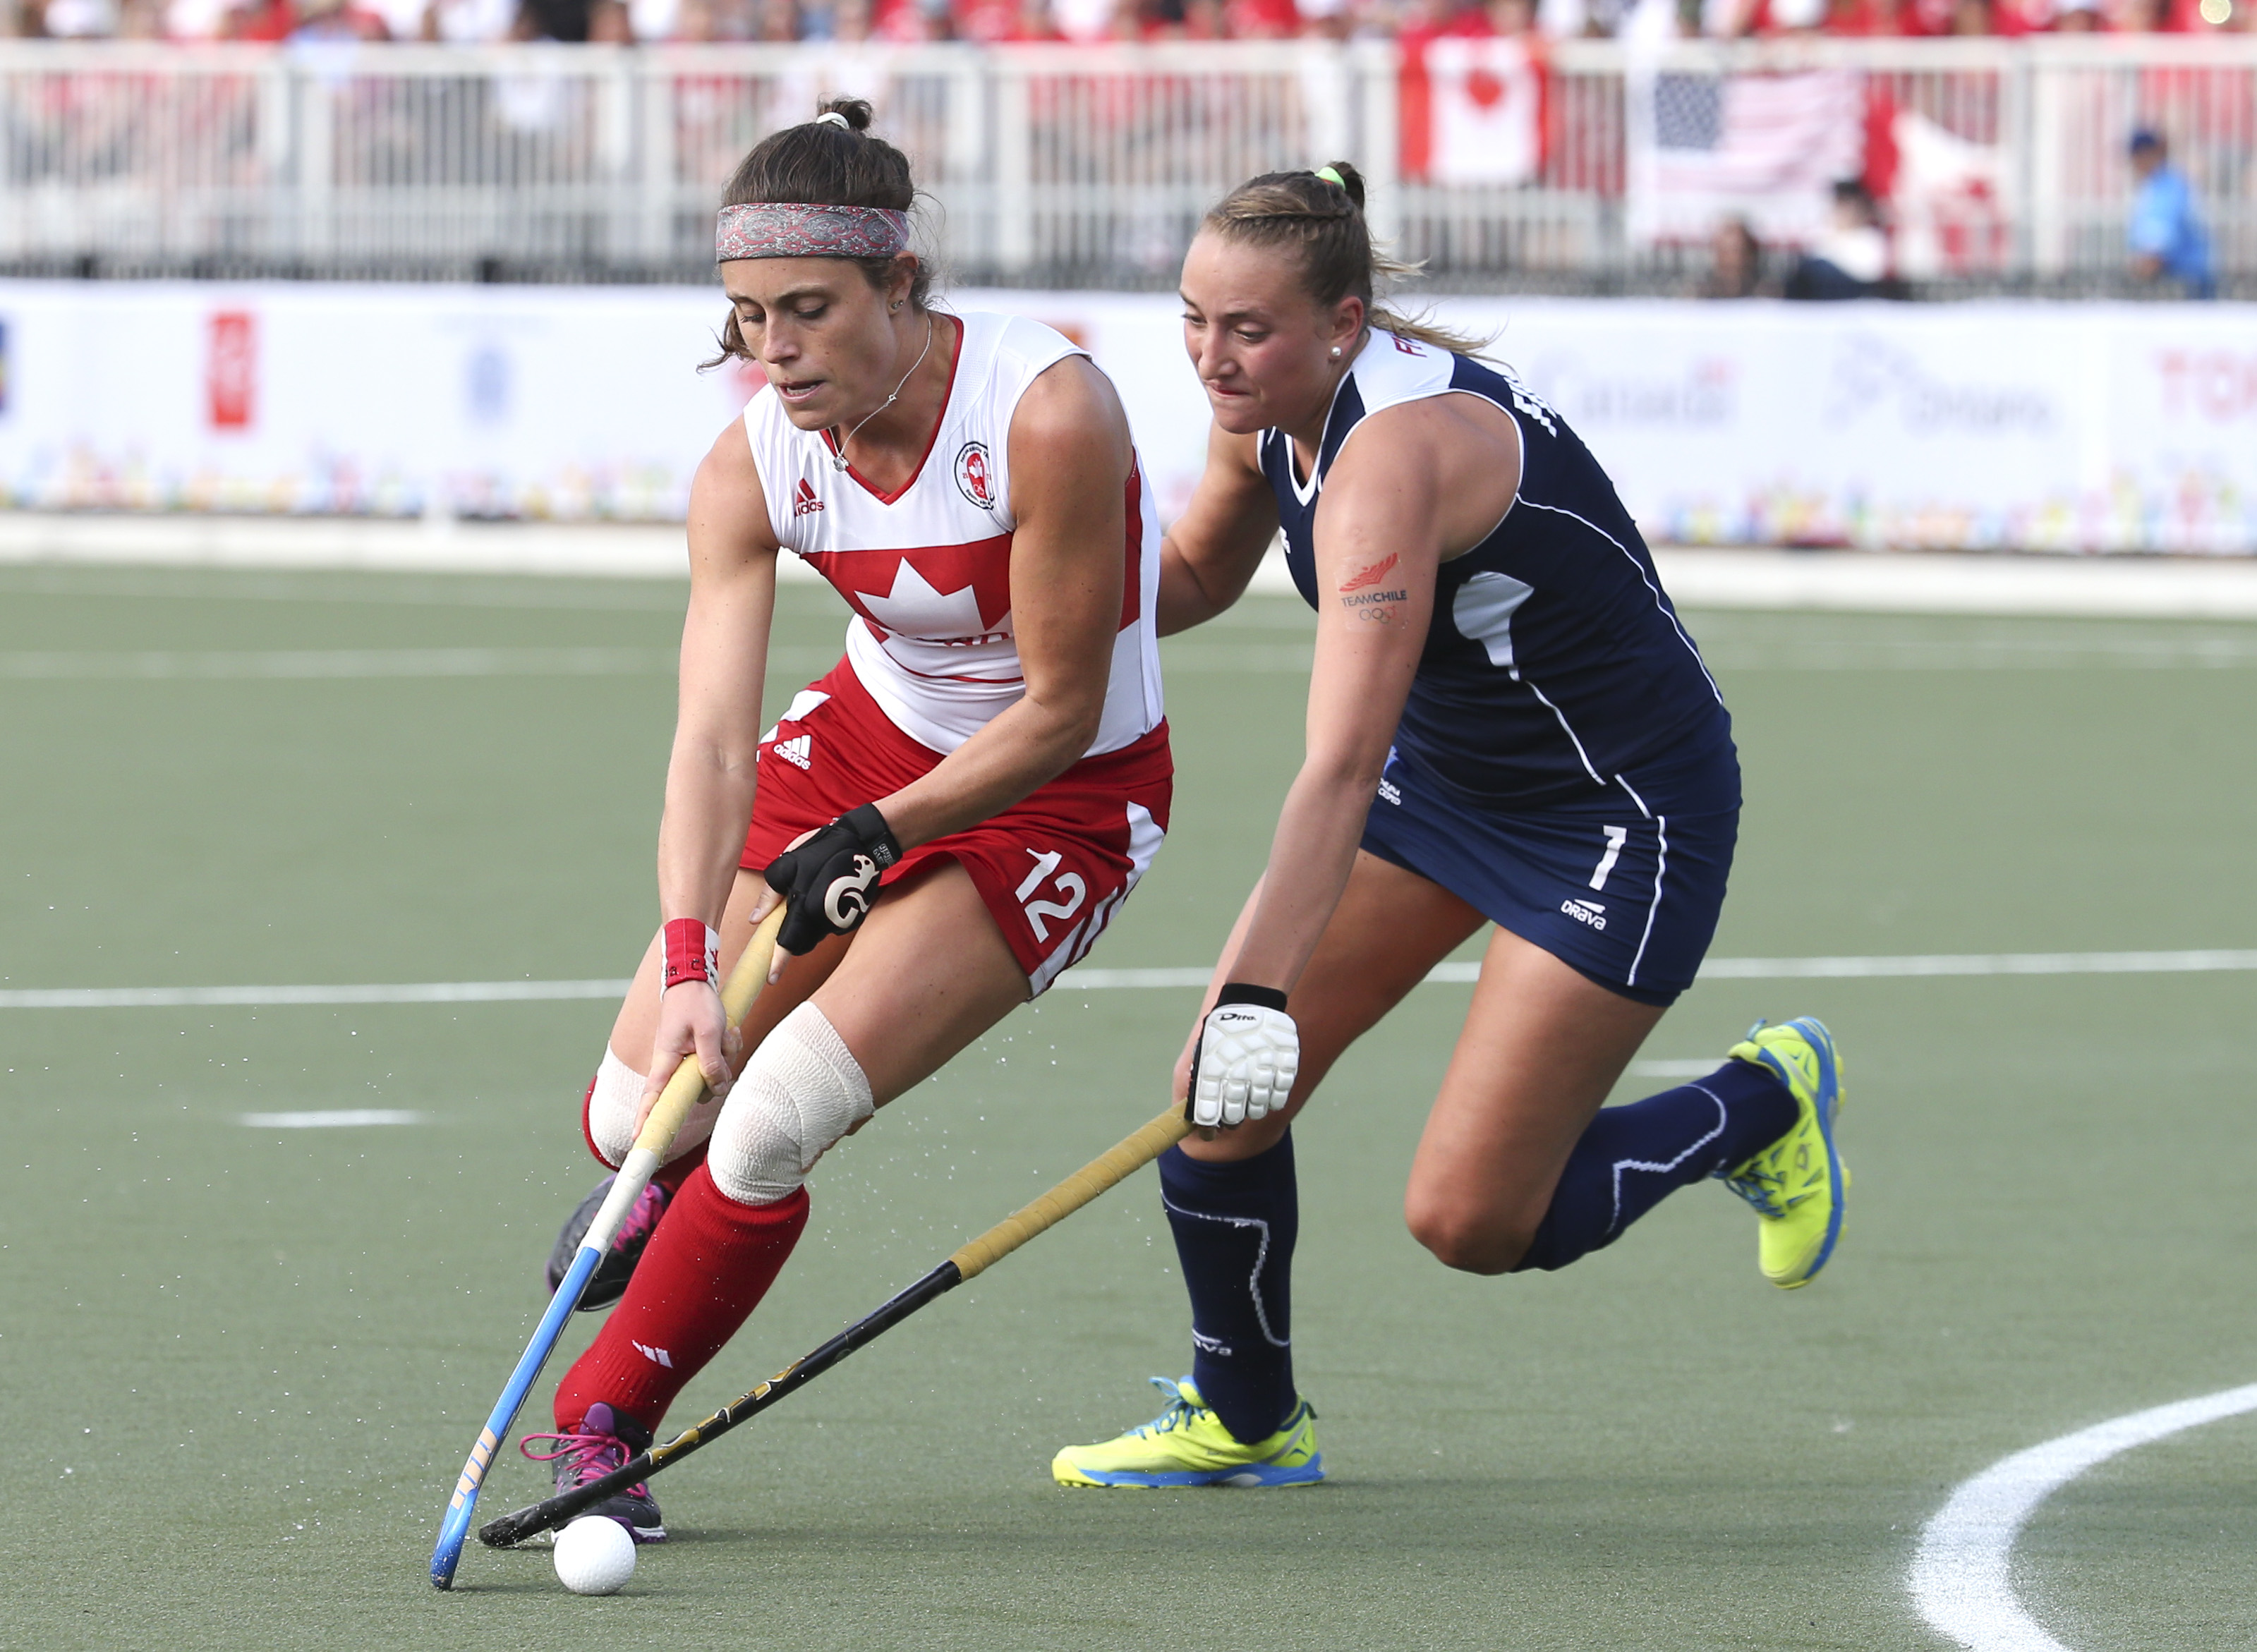 Thea Culley competes at the 2015 Pan American Games